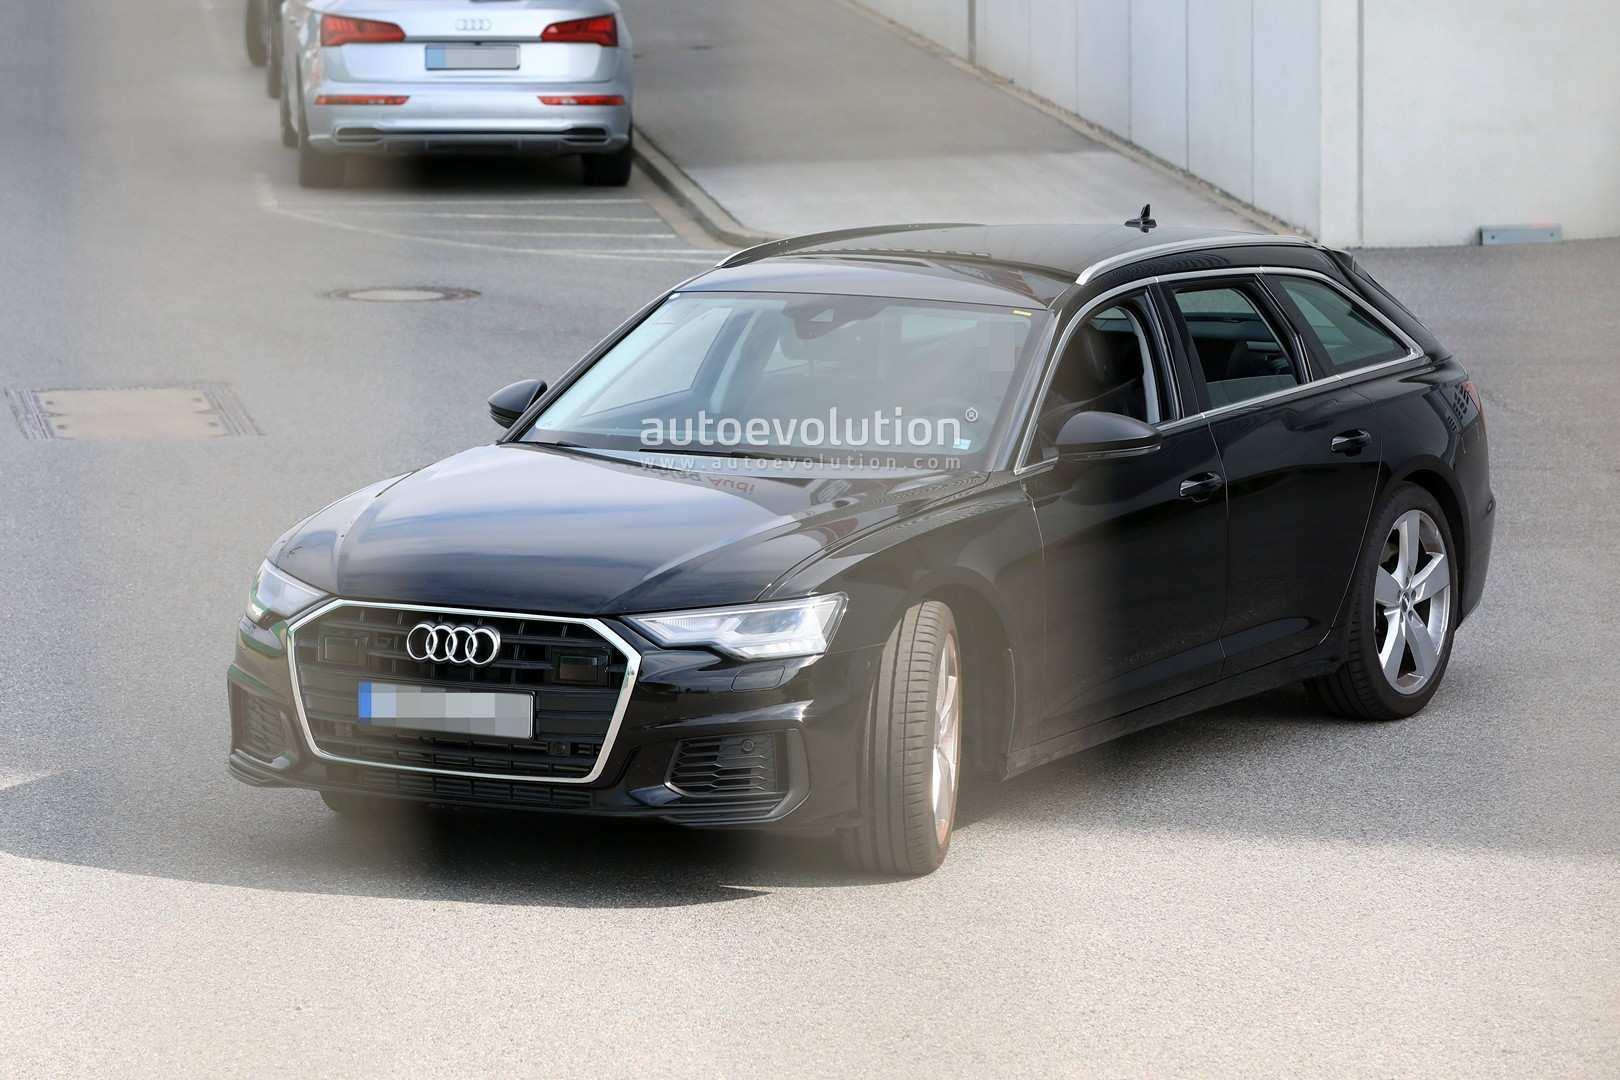 27 Concept of 2020 Audi A6 Wagon Overview with 2020 Audi A6 Wagon